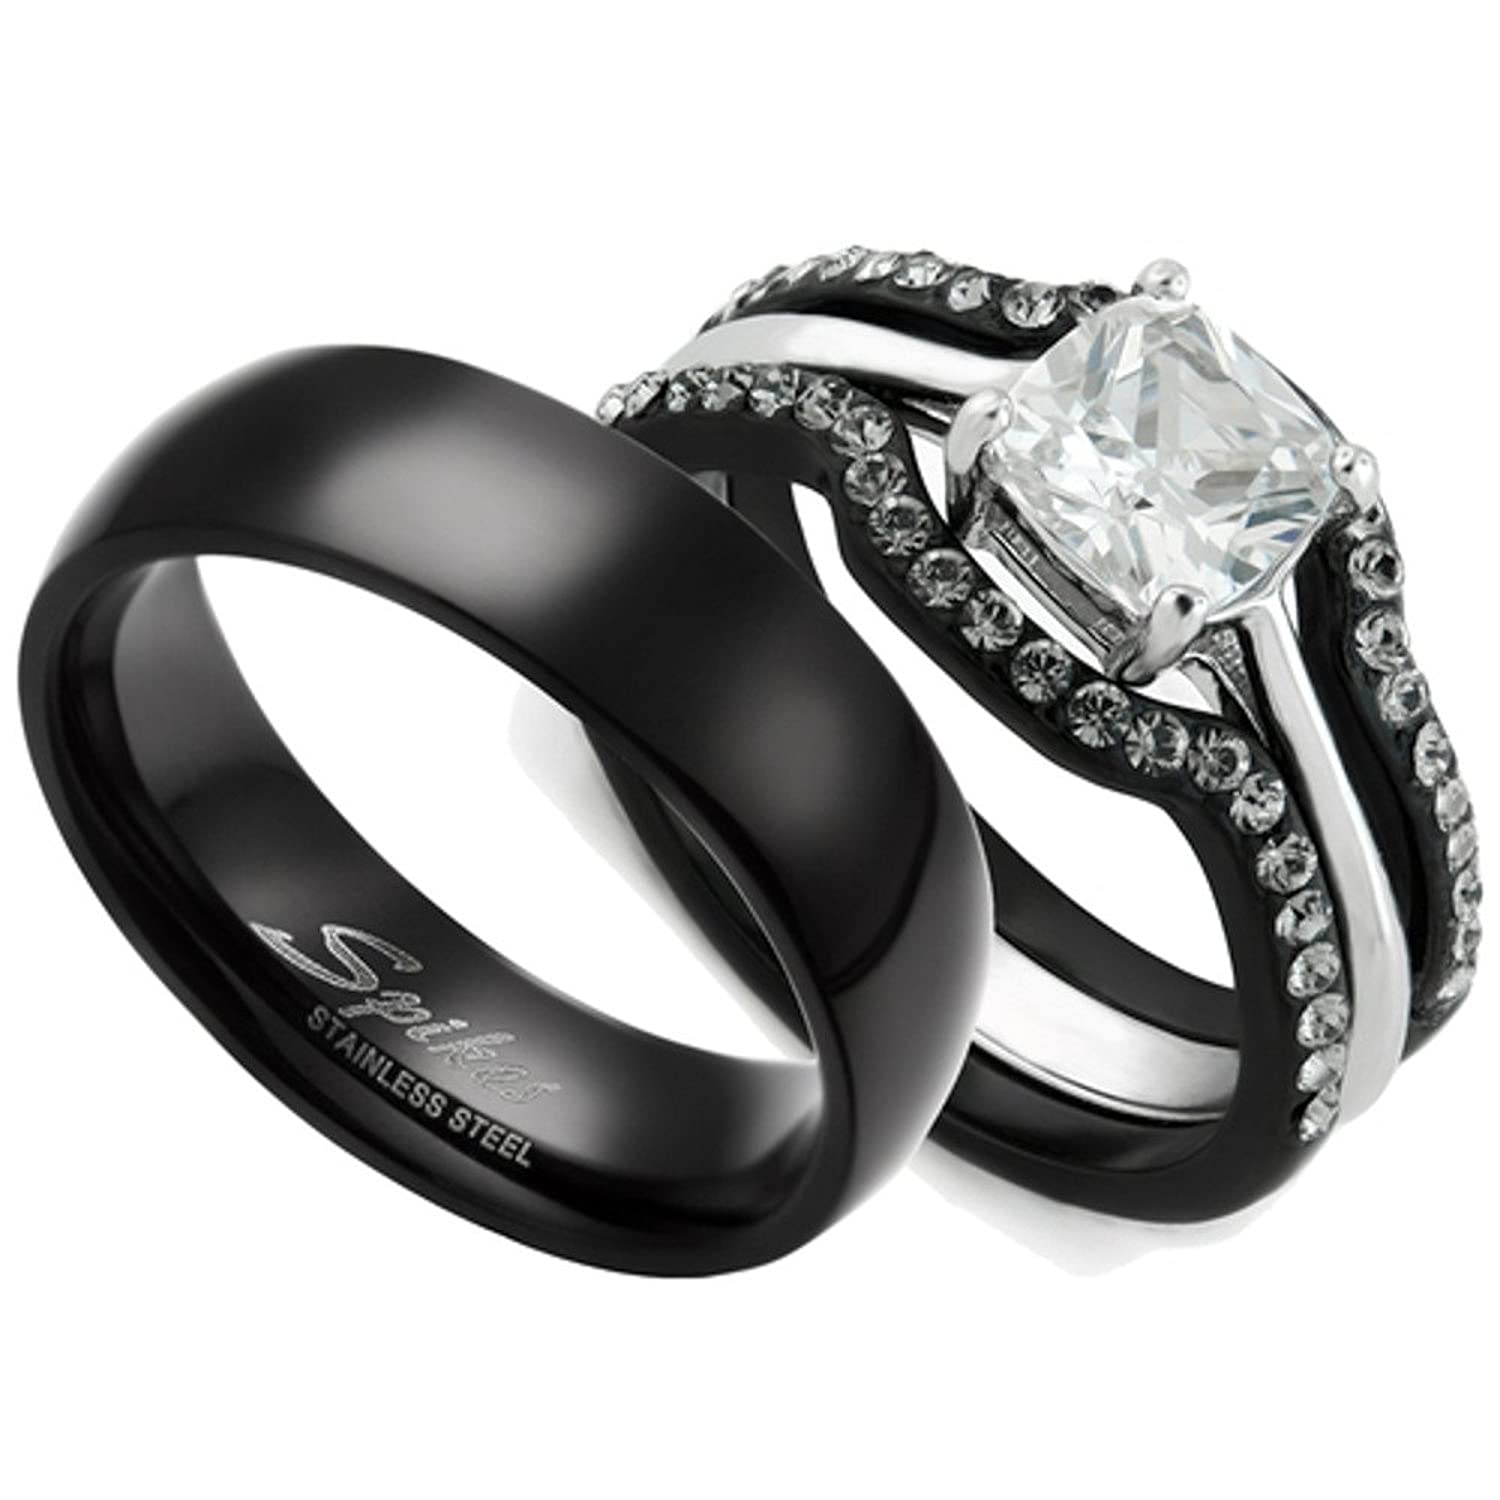 steel matte black products couple zirconia rings titanium az wedding cubic finished bishilin evermarker